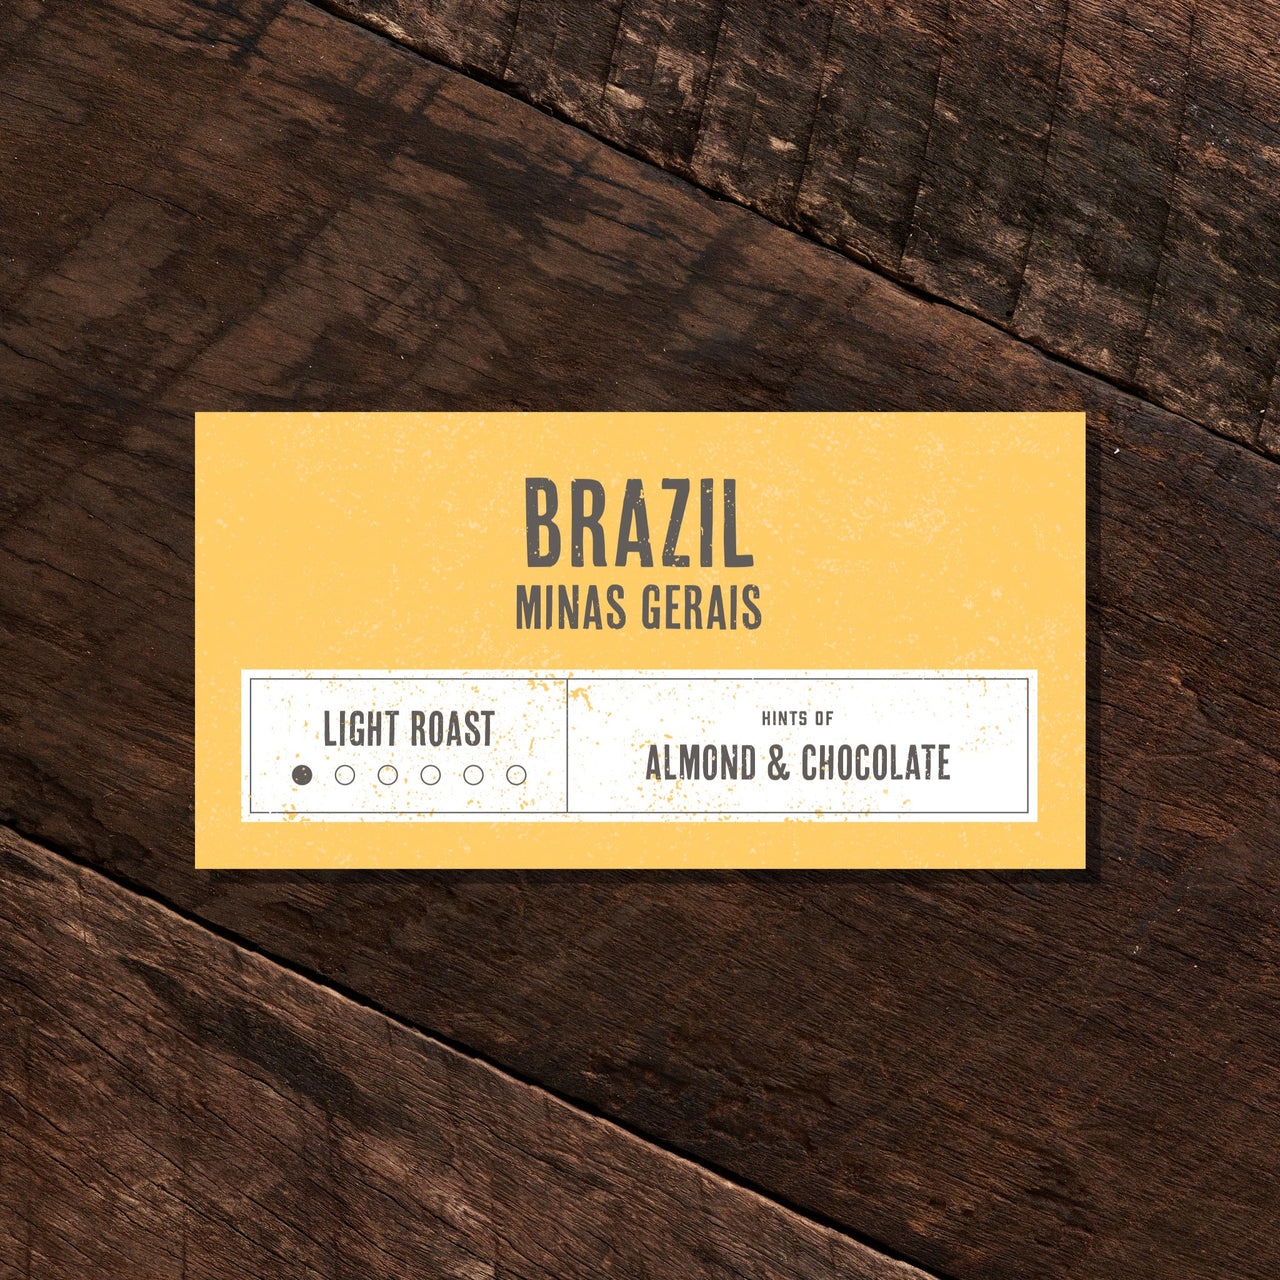 Brazil Minas Gerais – Light Roast